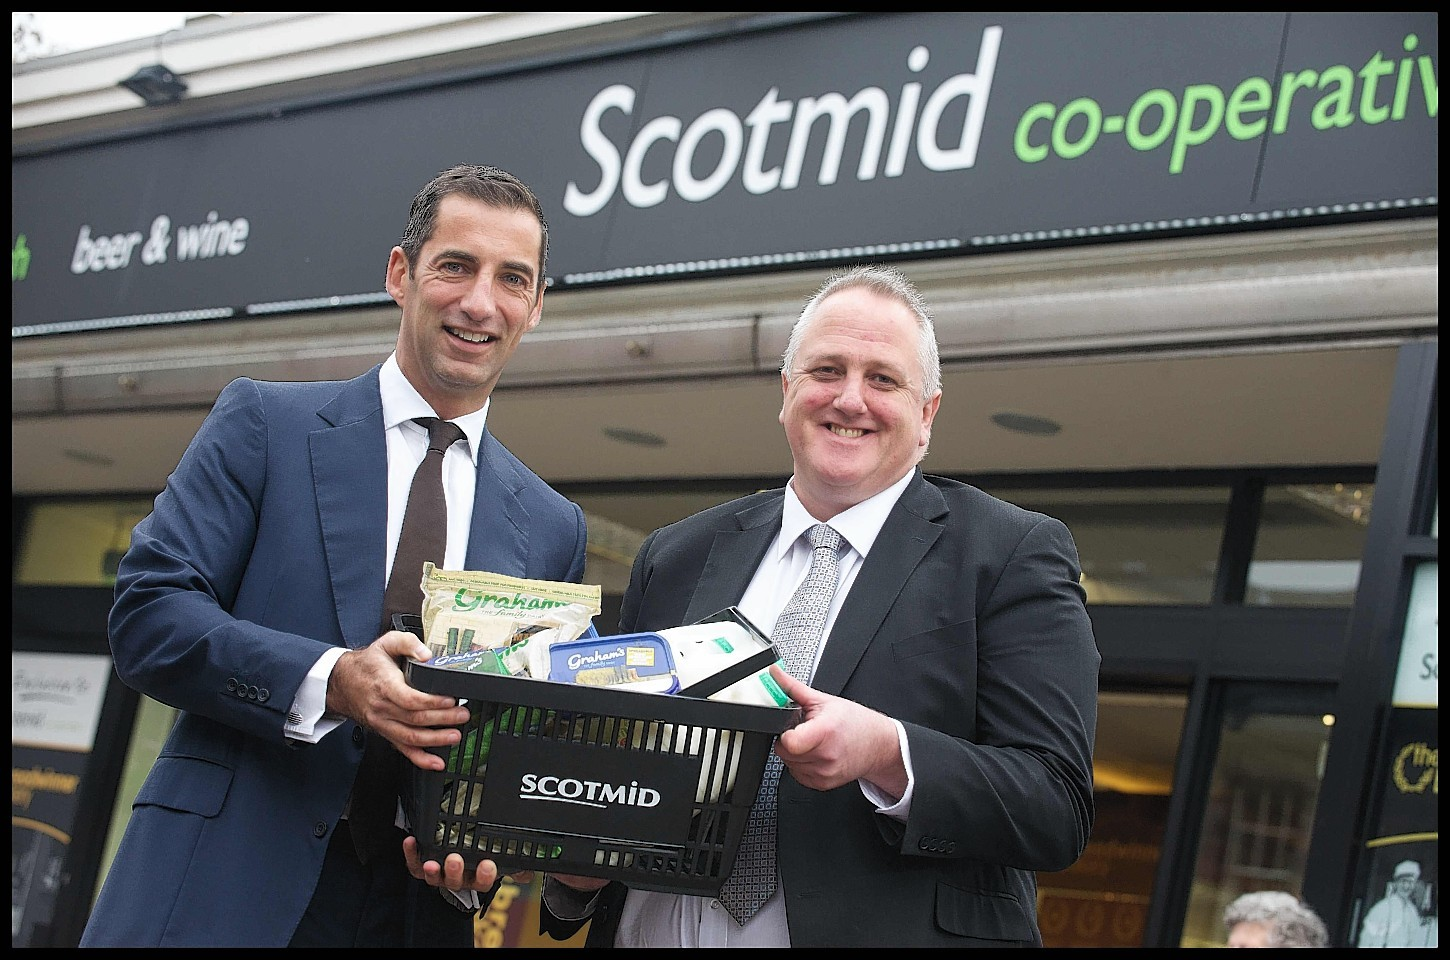 Graham and Scotmid have joined forces